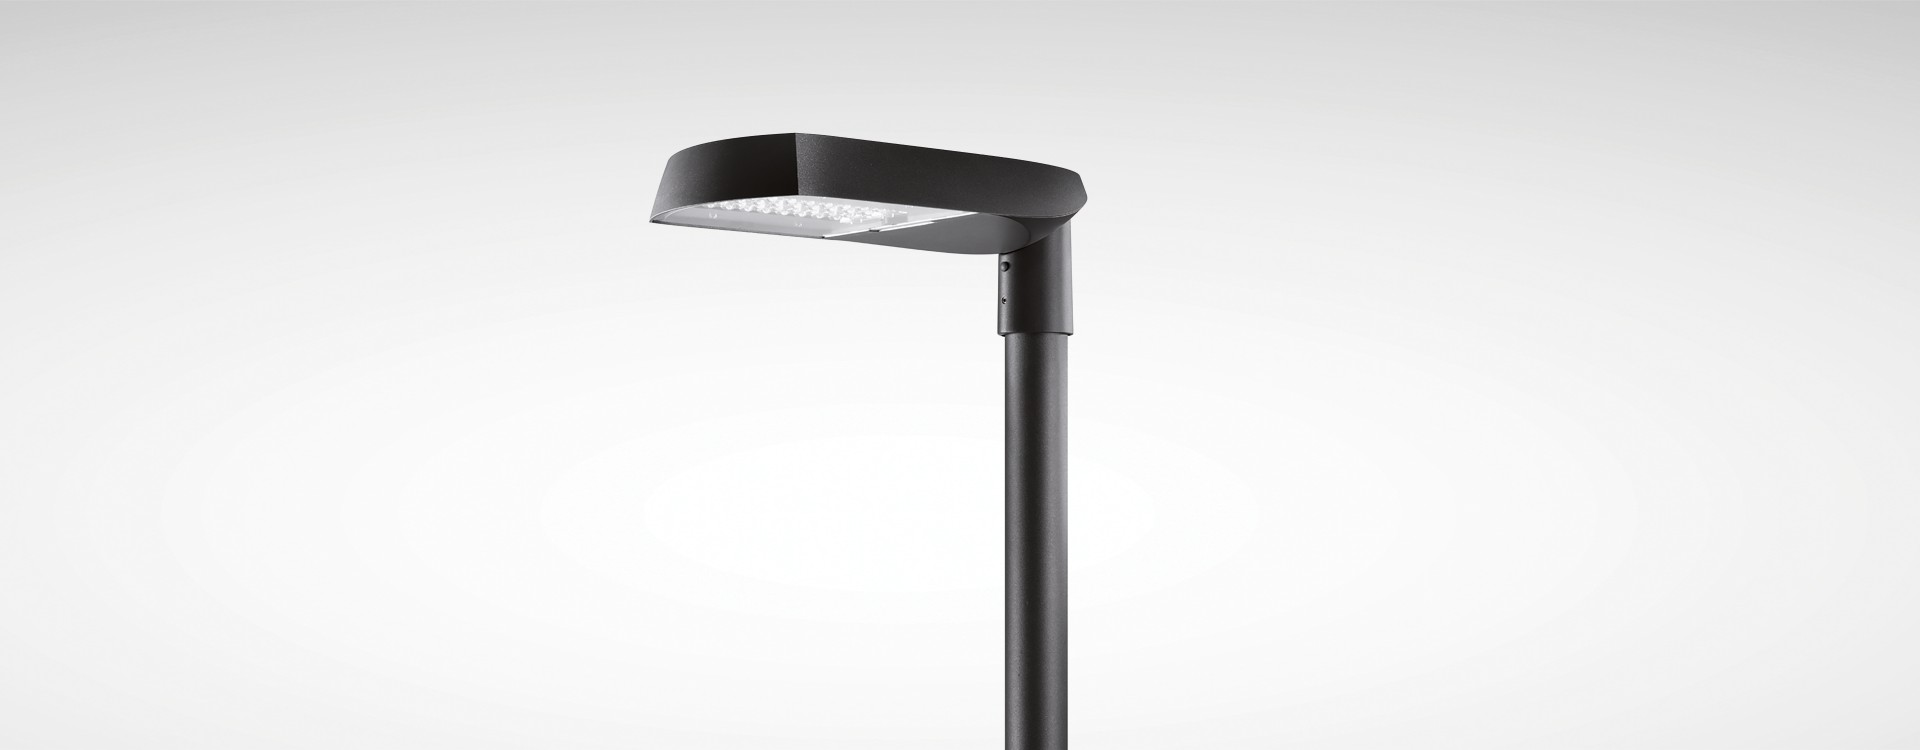 Led lighting trilux simplify your light cuvia 60 parisarafo Choice Image